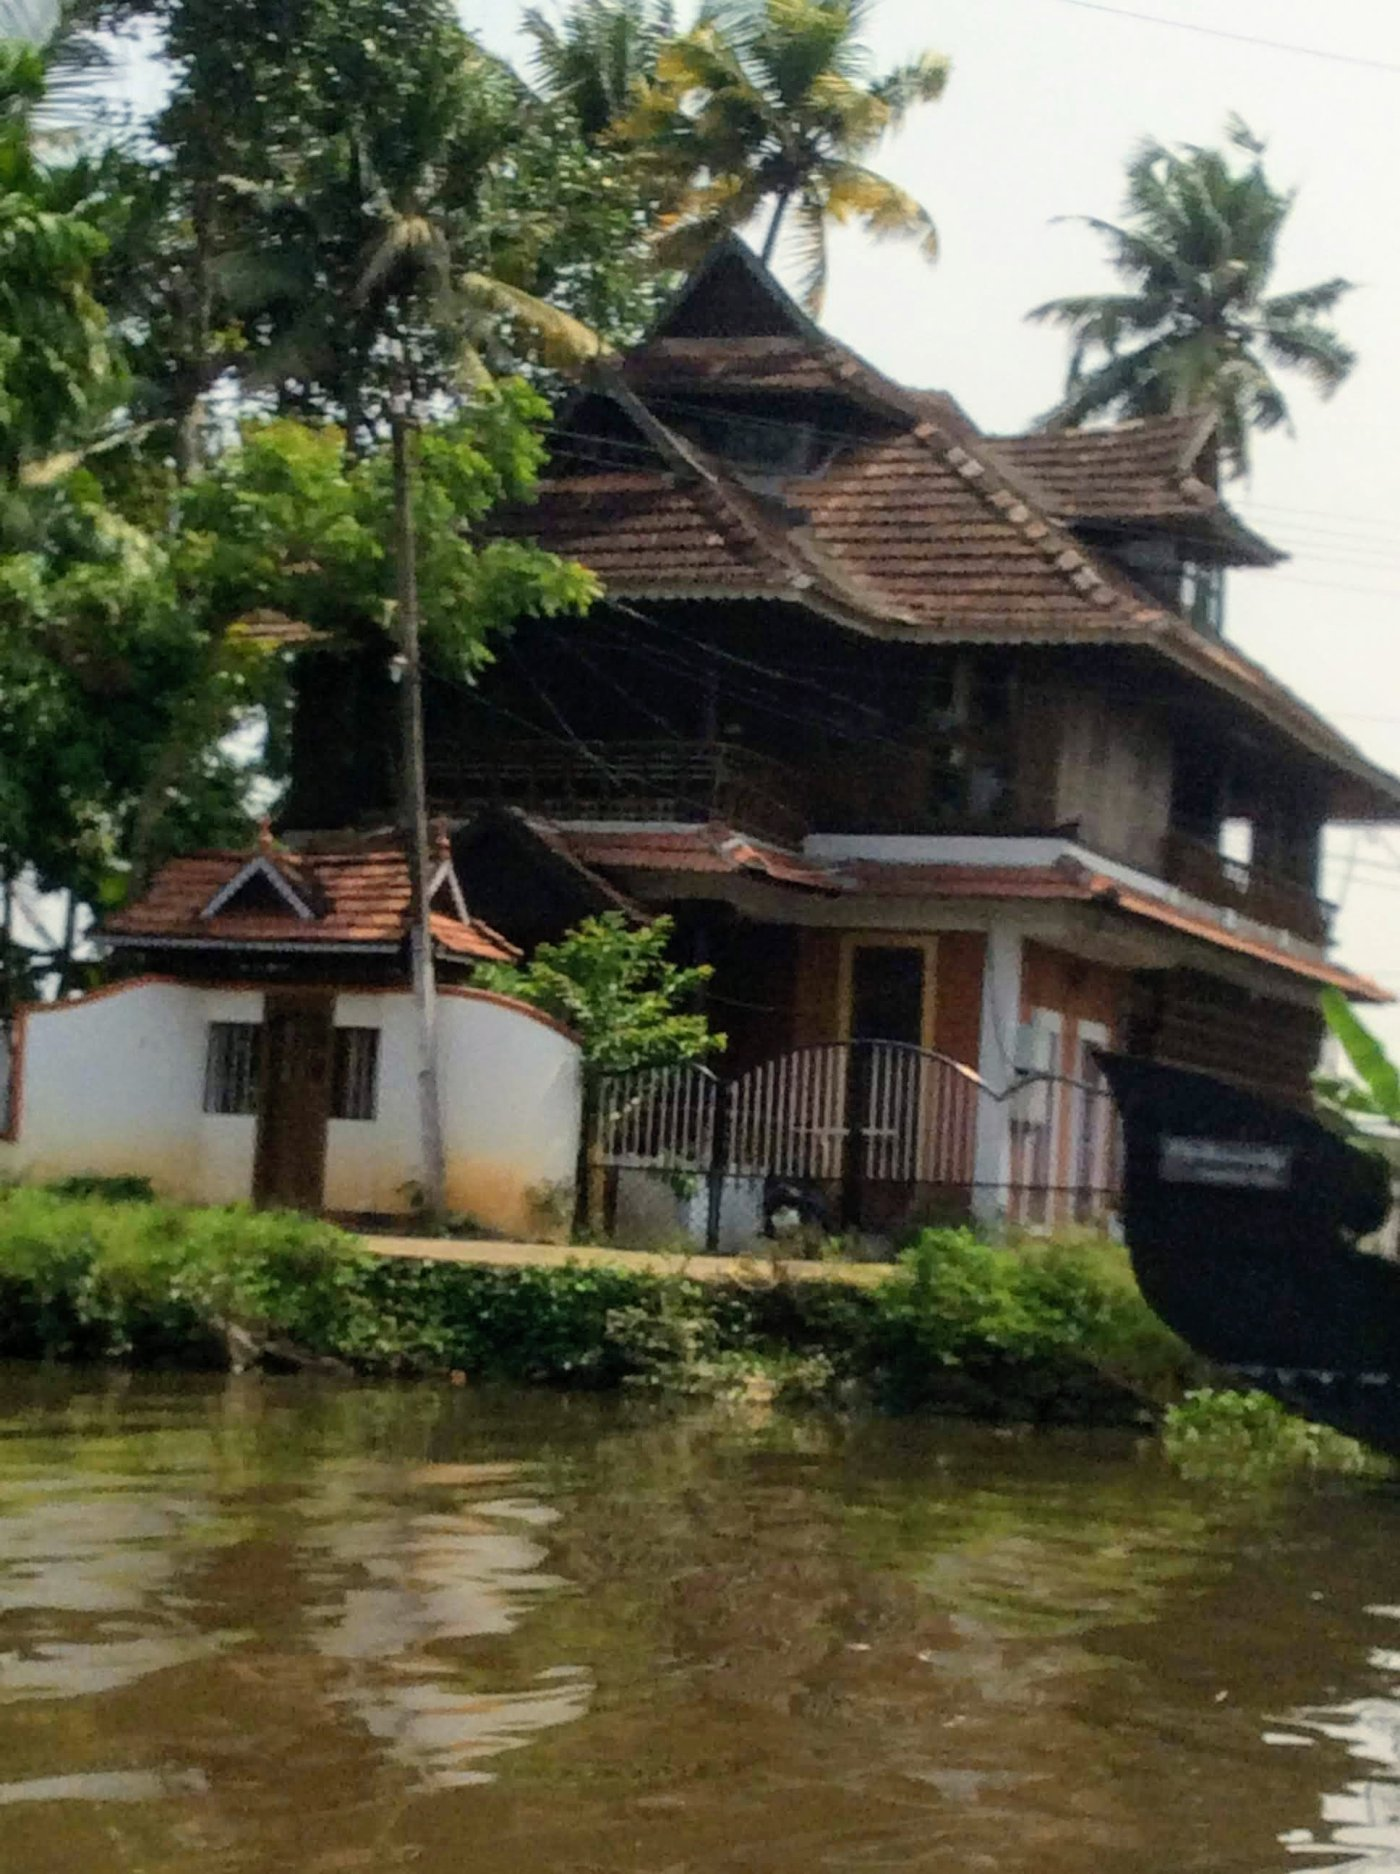 Kerala has its own traditional architectural styles.